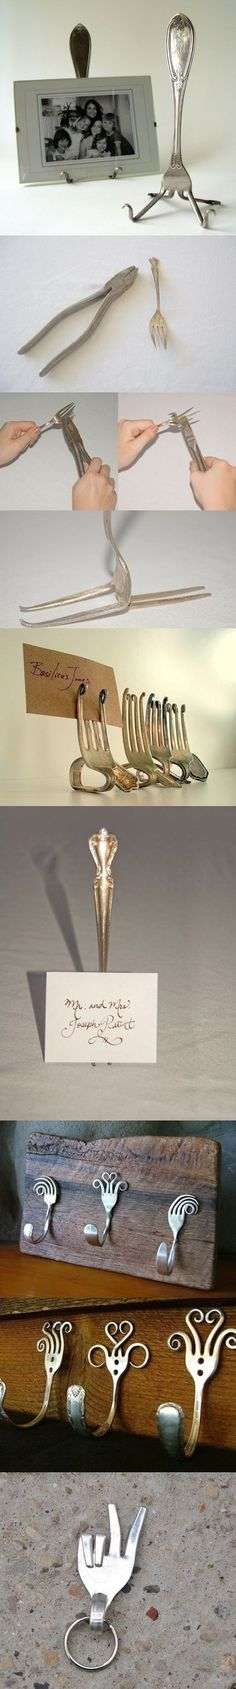 DIY your photo charms, 100% compatible with Pandora bracelets. Make your gifts special. DIY Fork Art Scour up some old forks and use a pair of pliers and elbow grease to form them into whatever shape you like! Here's some inspiration: http://doitandhow.com/category/recycle-it/#